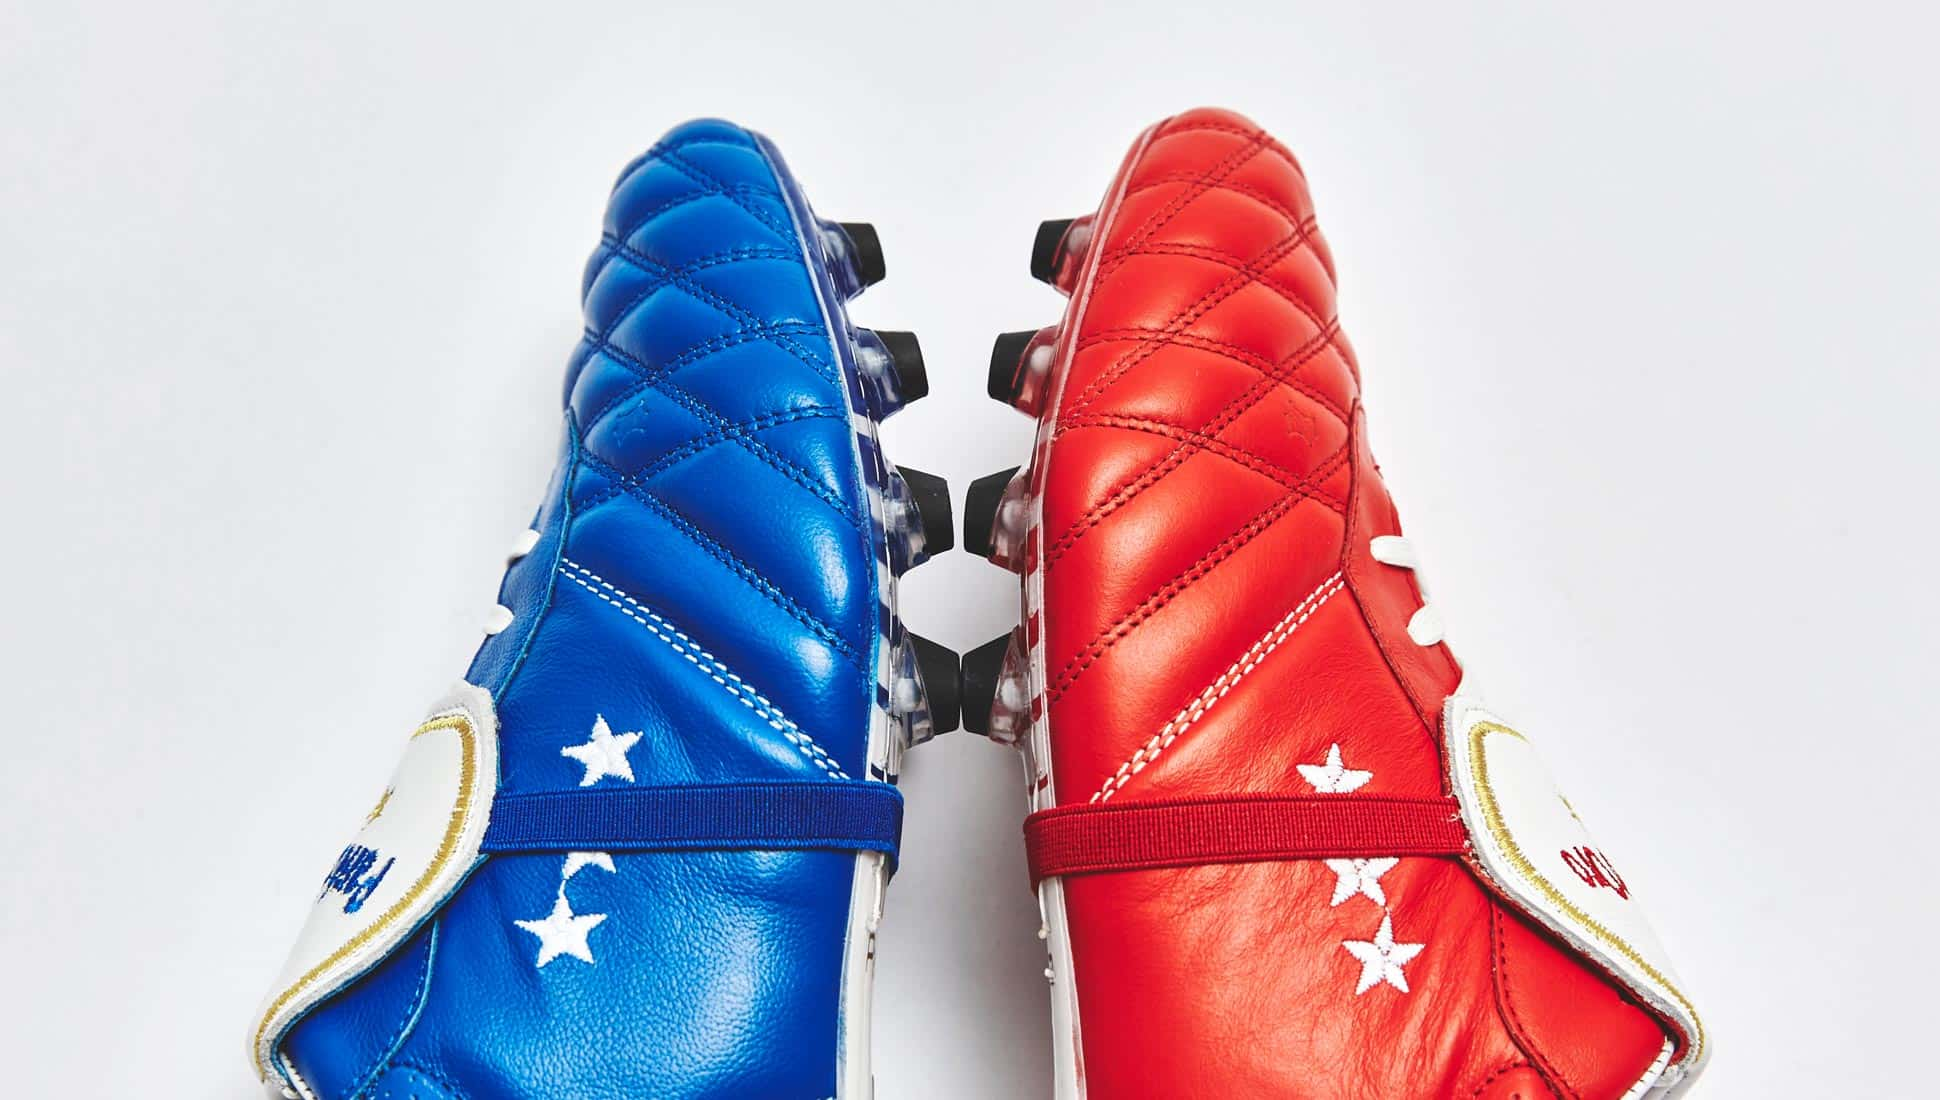 chaussures-football-pantofola-doro-emidio-italia-red-blue-2